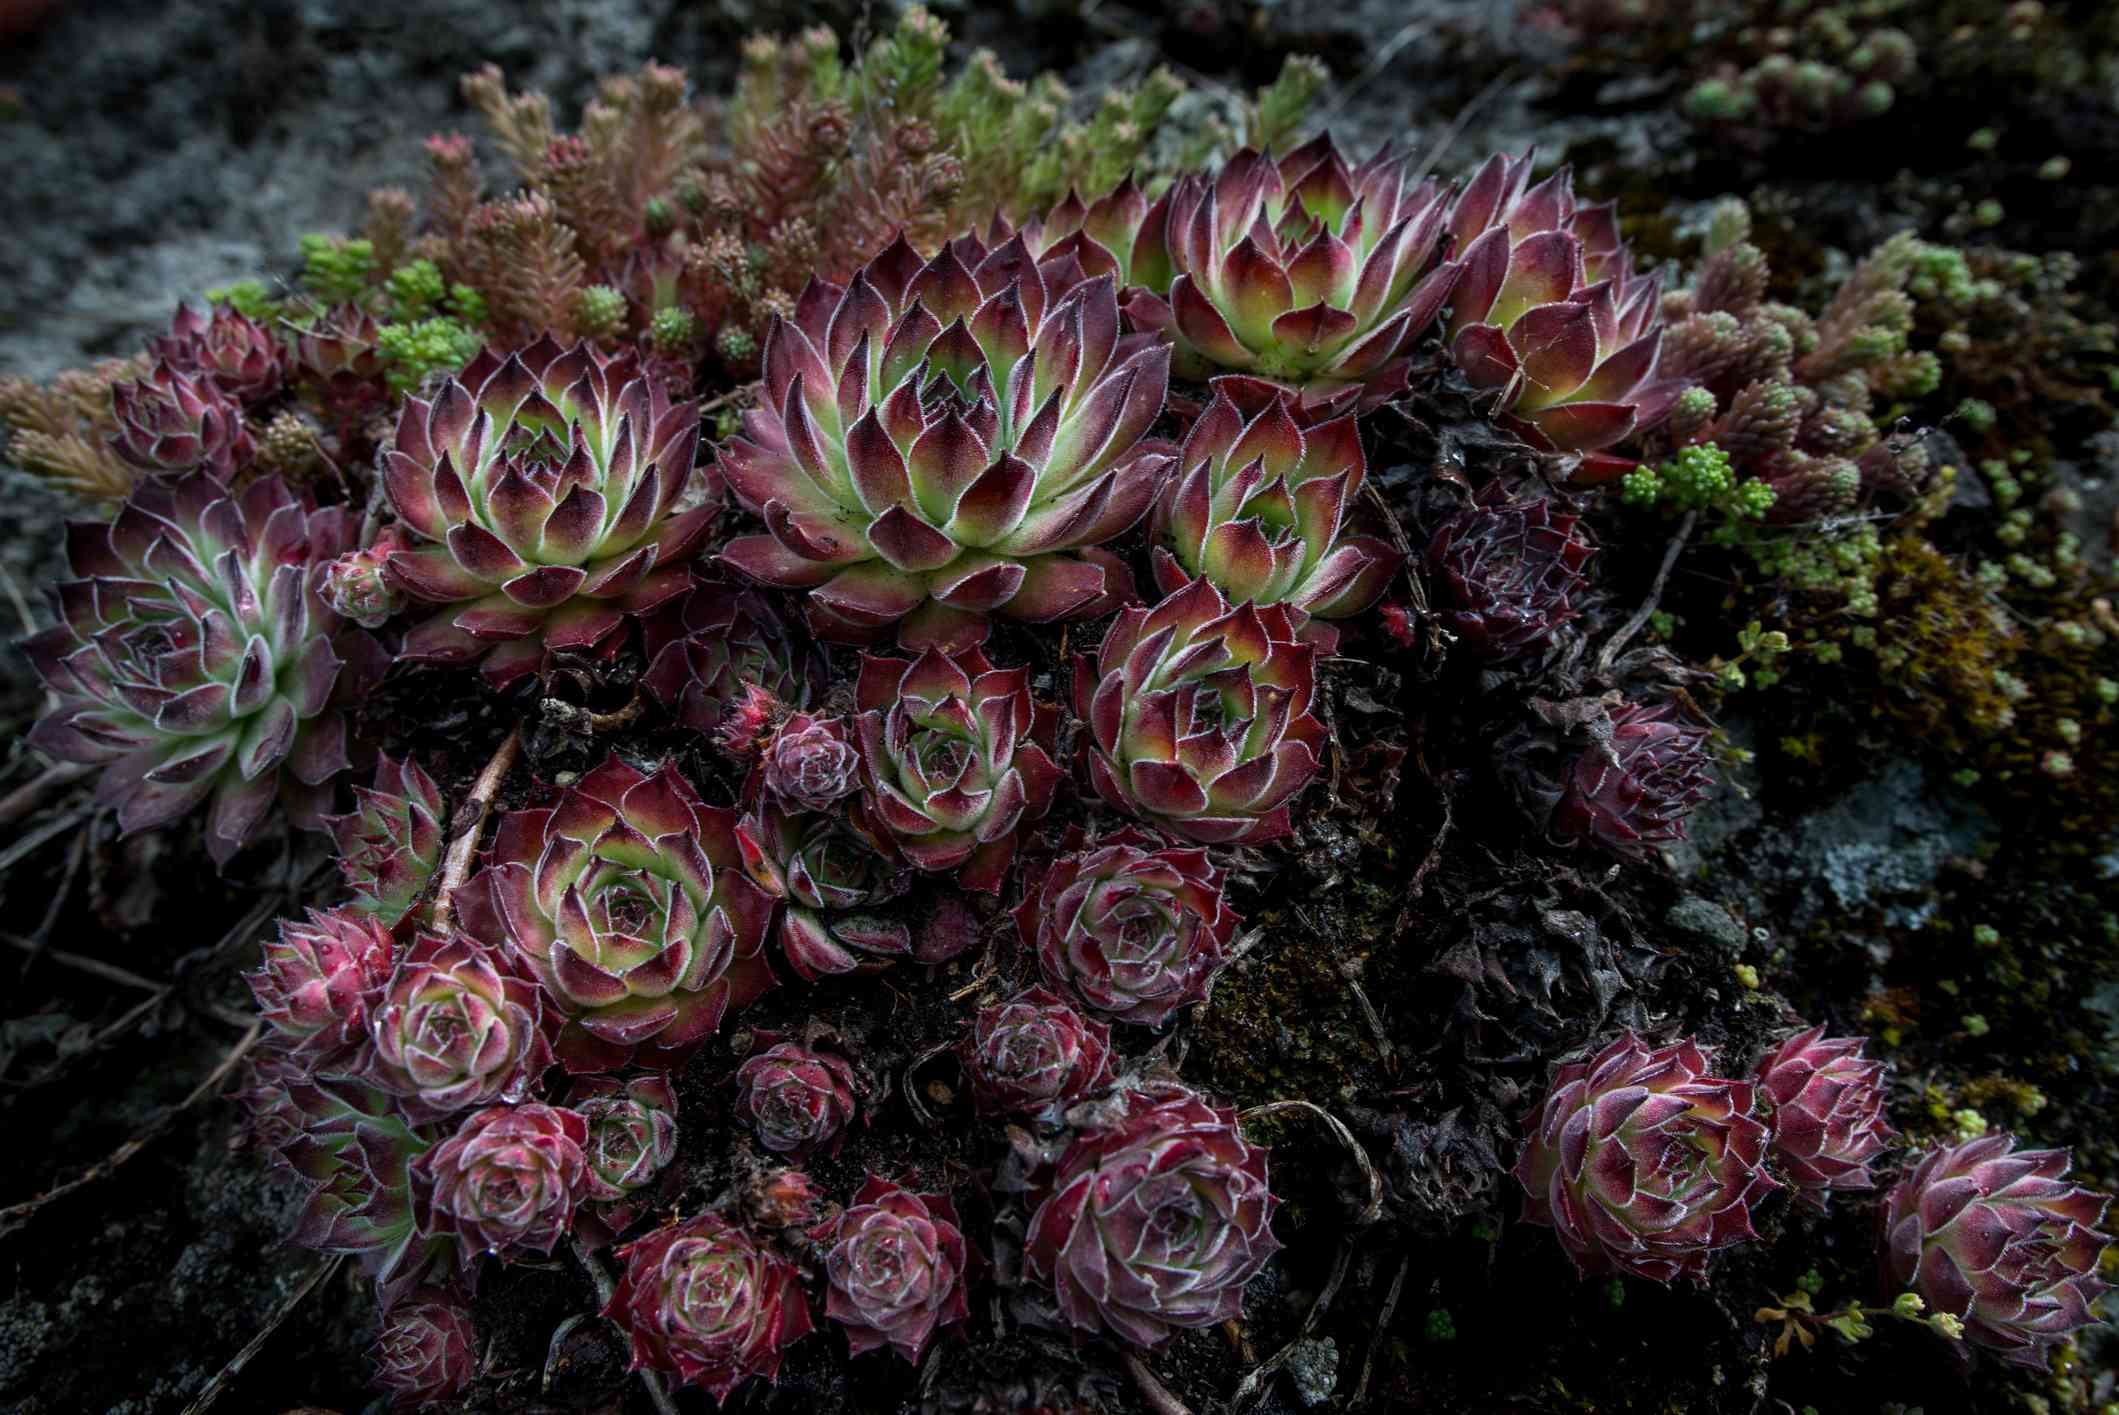 A group of Sempervivums with dark-tipped foliage.